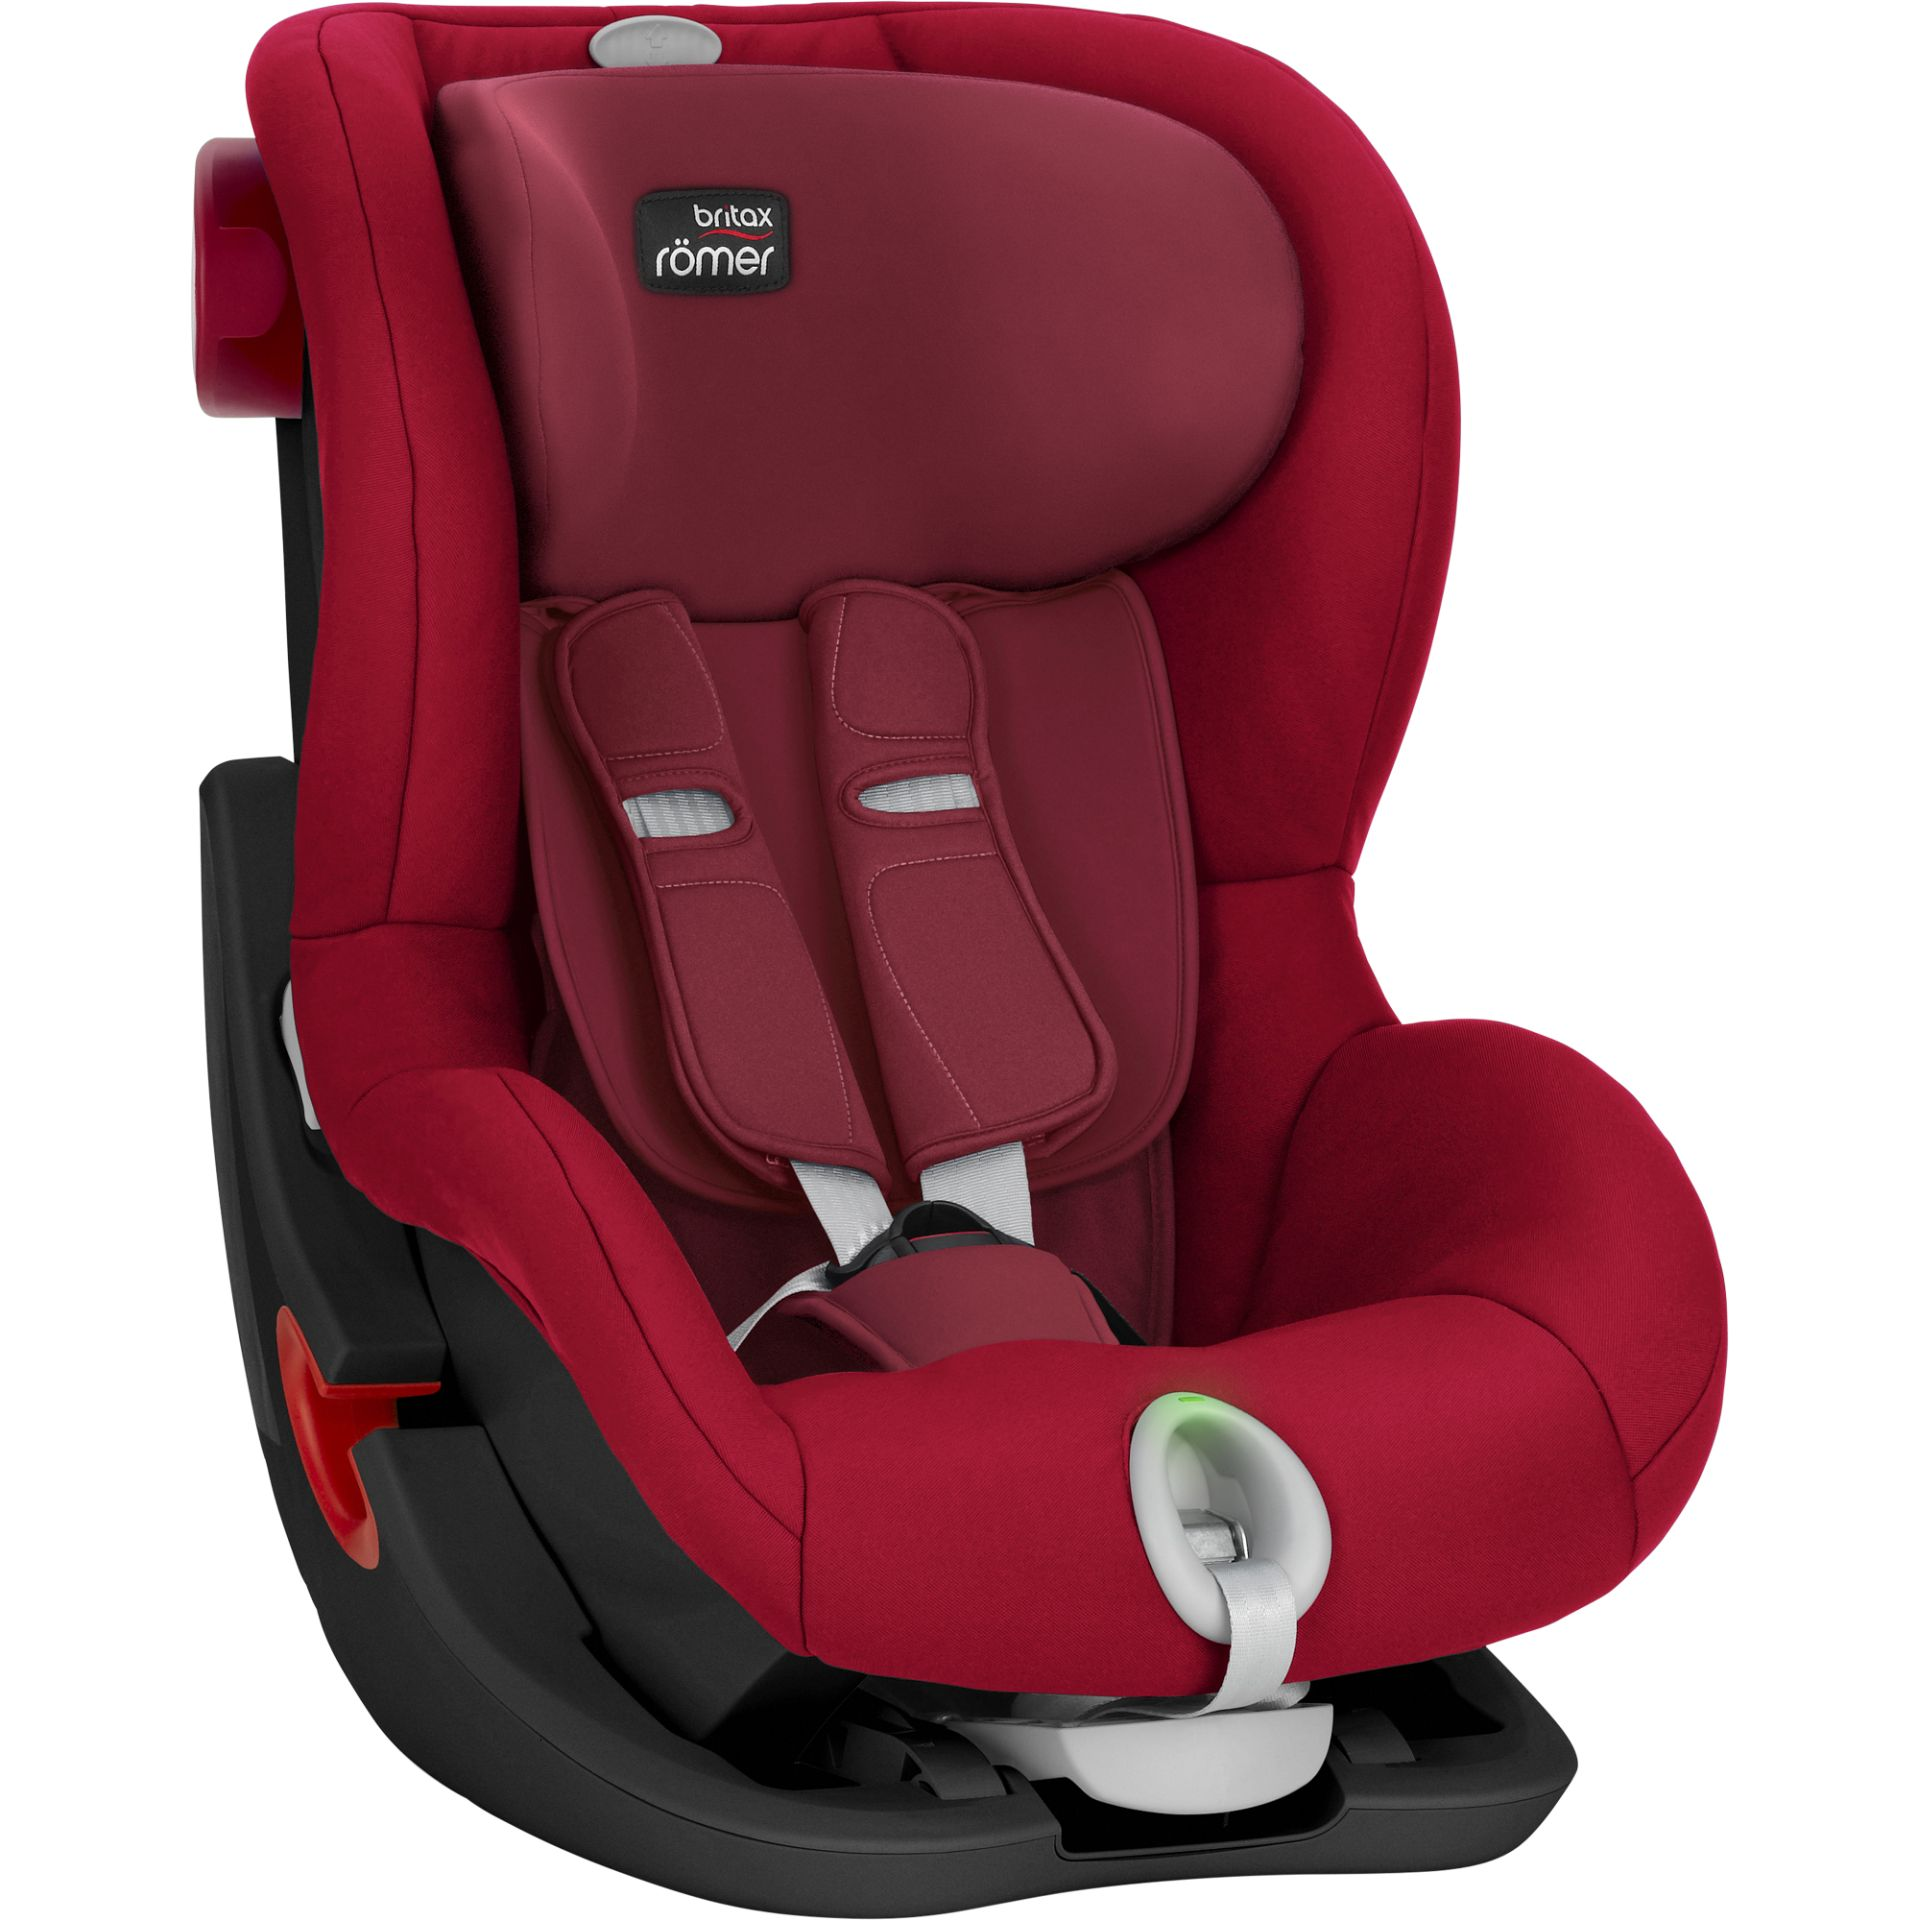 Si ge d enfant britax r mer king ii ls black series for Siege enfant